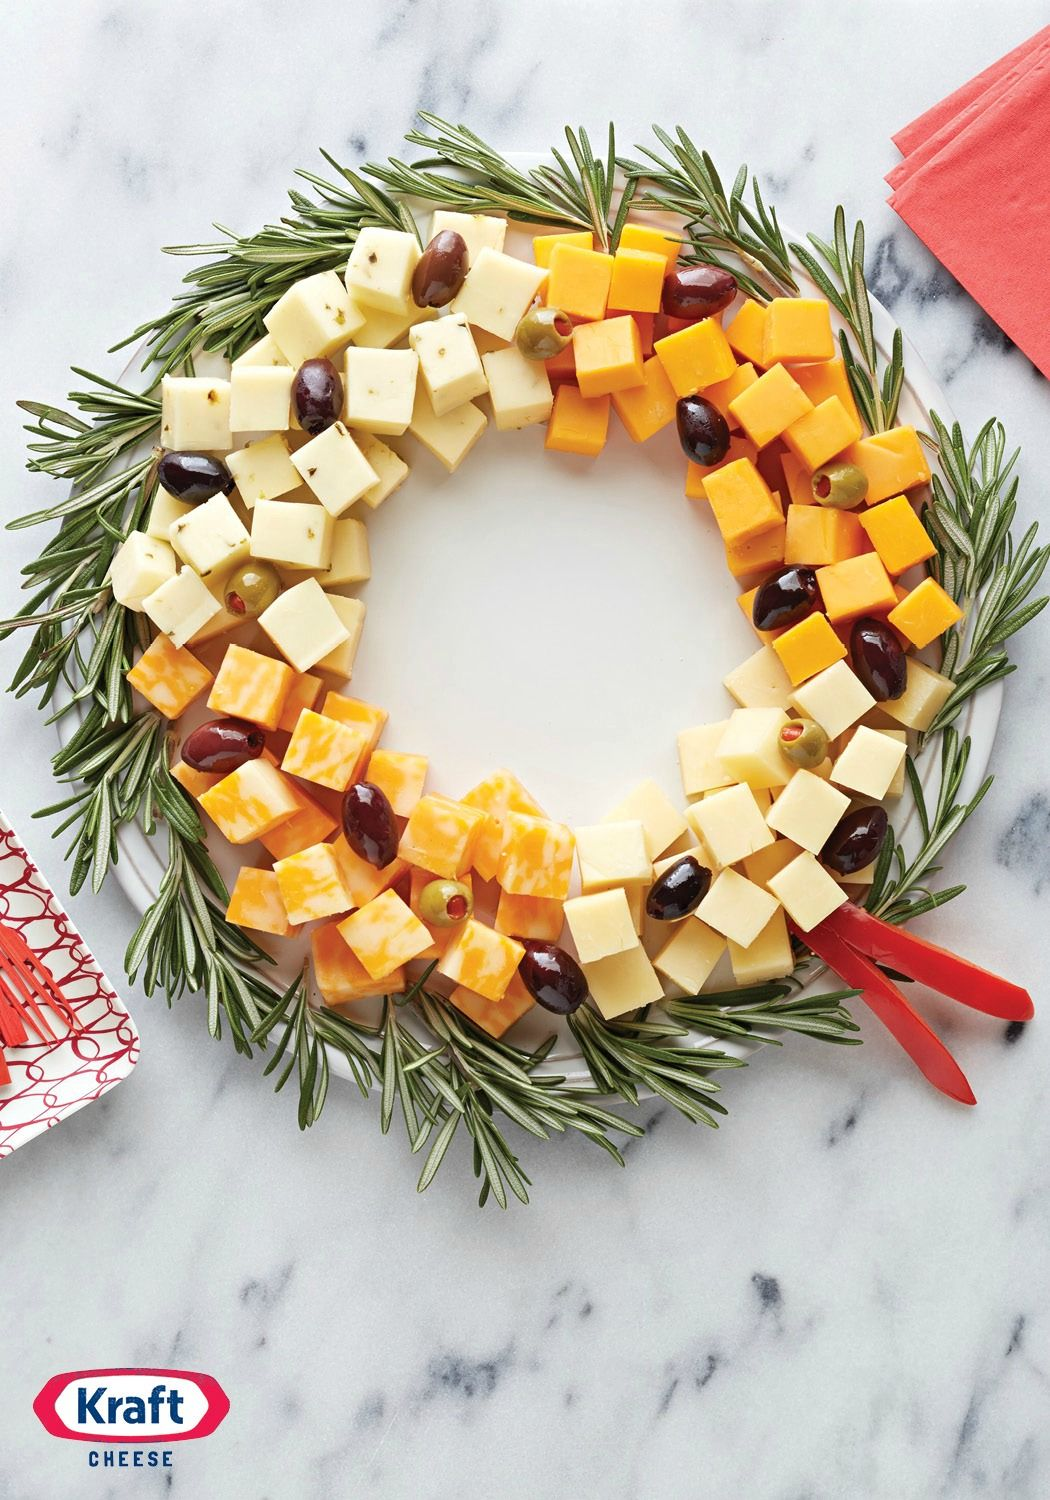 Easy Cheese Wreath — Arrange a variety of delicious, creamy cheese cubes in a circle, add olives, and youve got yourself a simple and elegant appetizer recipe. Easy Recipes For Kids To Make, Easy Recipes For Two, Easy Recipes Quick And, Easy Recipes For Beginners, Easy Recipes For Desserts, Easy Recipes With Few Ingredients, Easy Recipes On A Budget, Easy Recipes For Appetizers #appetizers #easycheese #easyrecipe